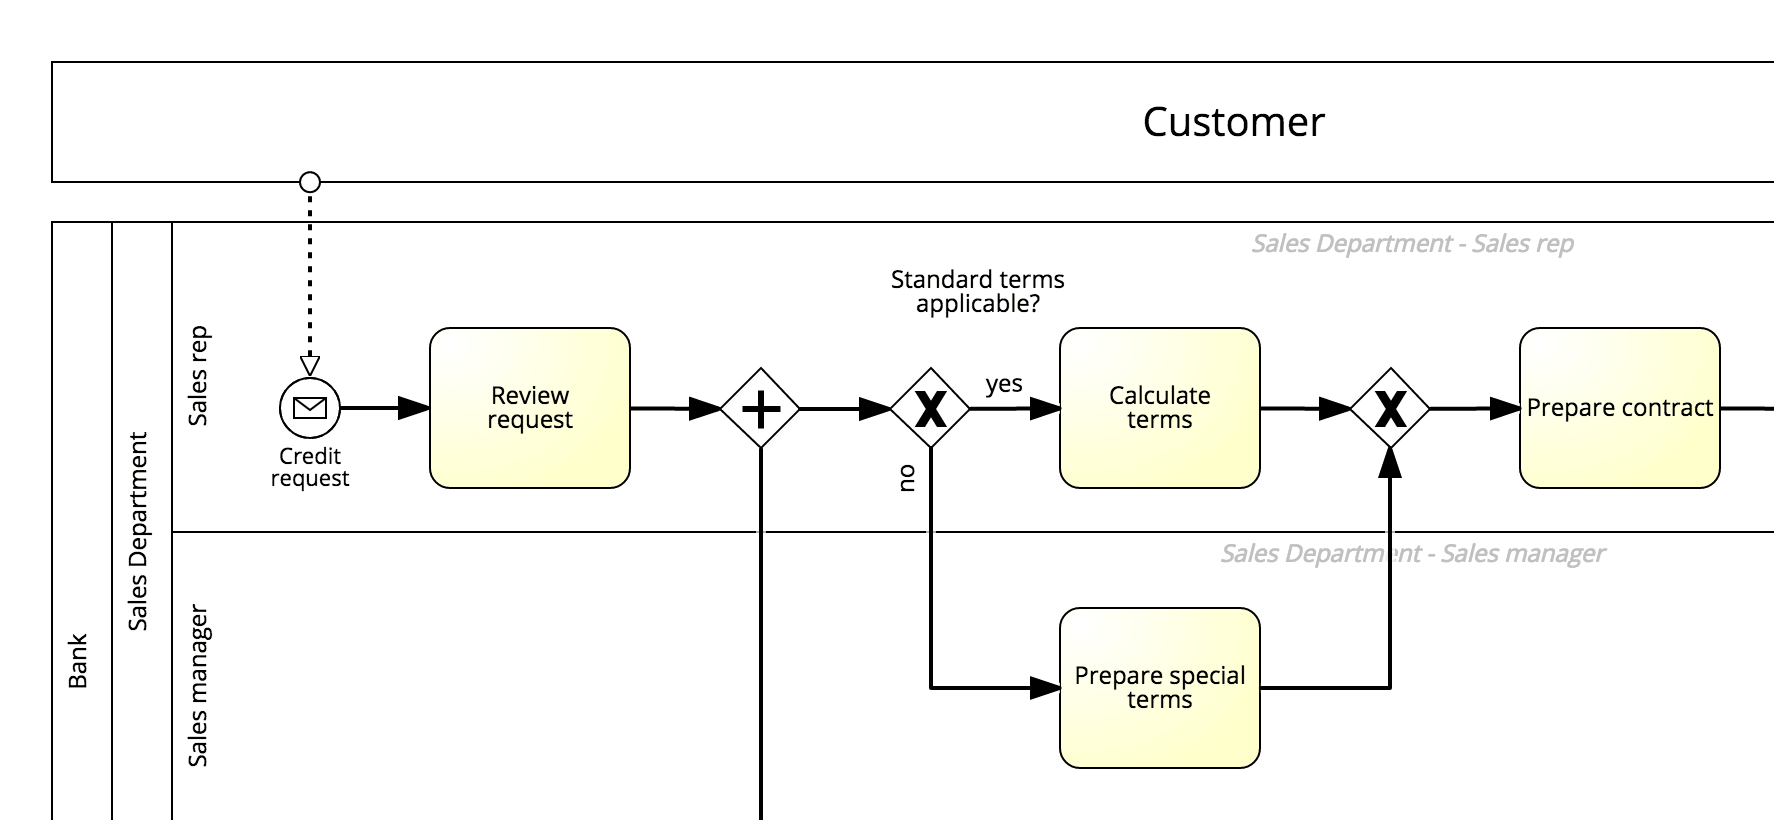 business process modeling style: correct - model deviation explicitly